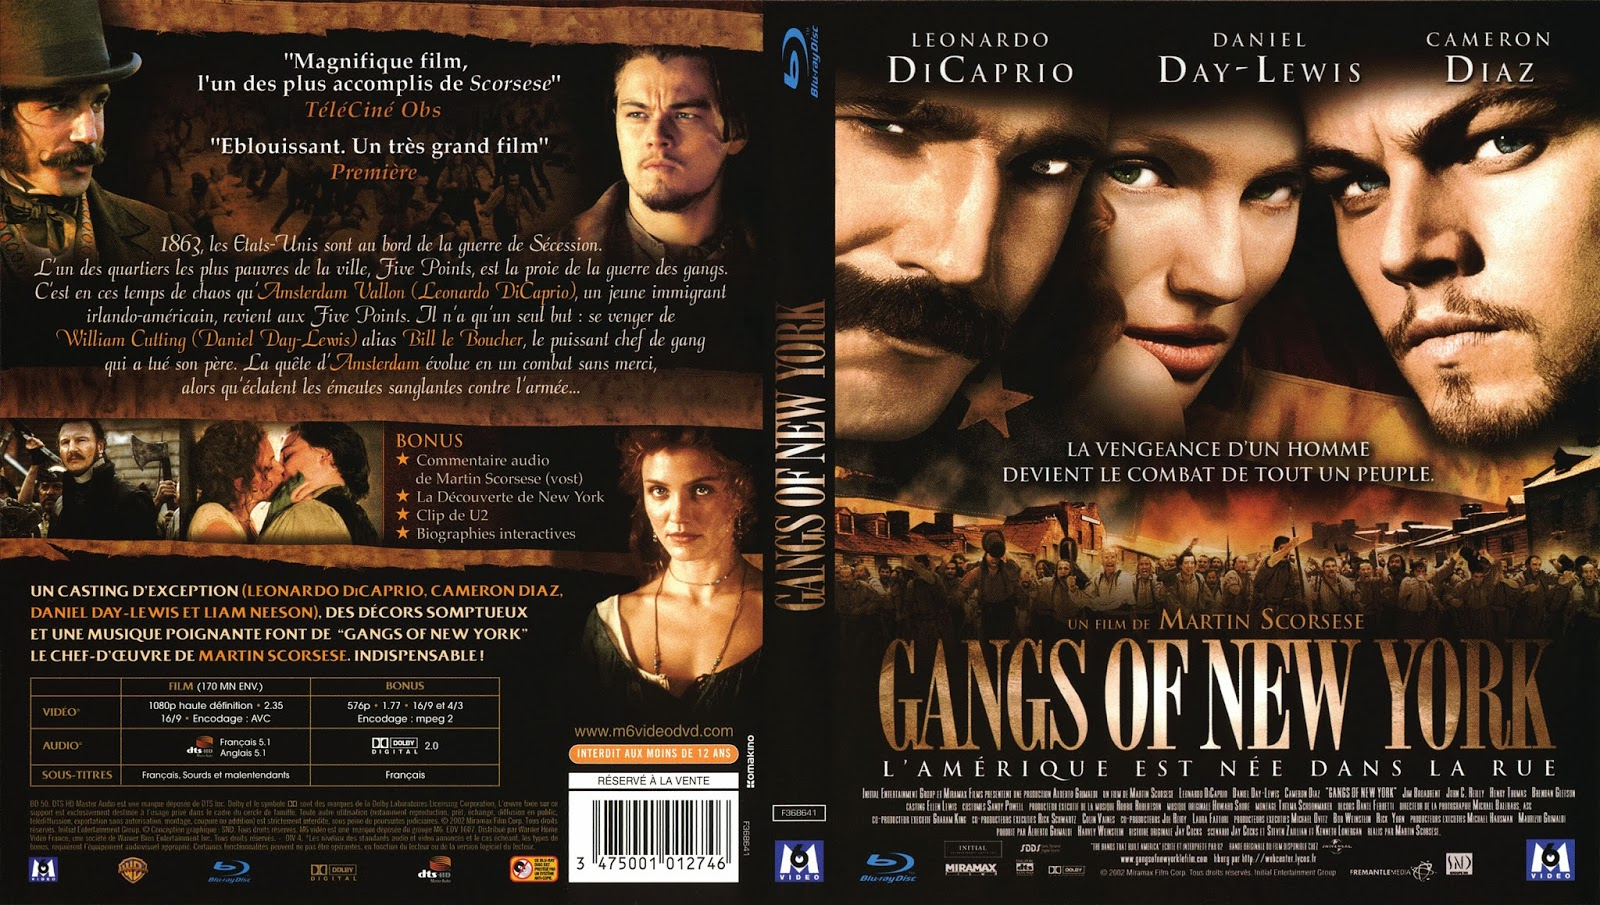 t l charger film gangs of new york gratuit film complet en francais. Black Bedroom Furniture Sets. Home Design Ideas